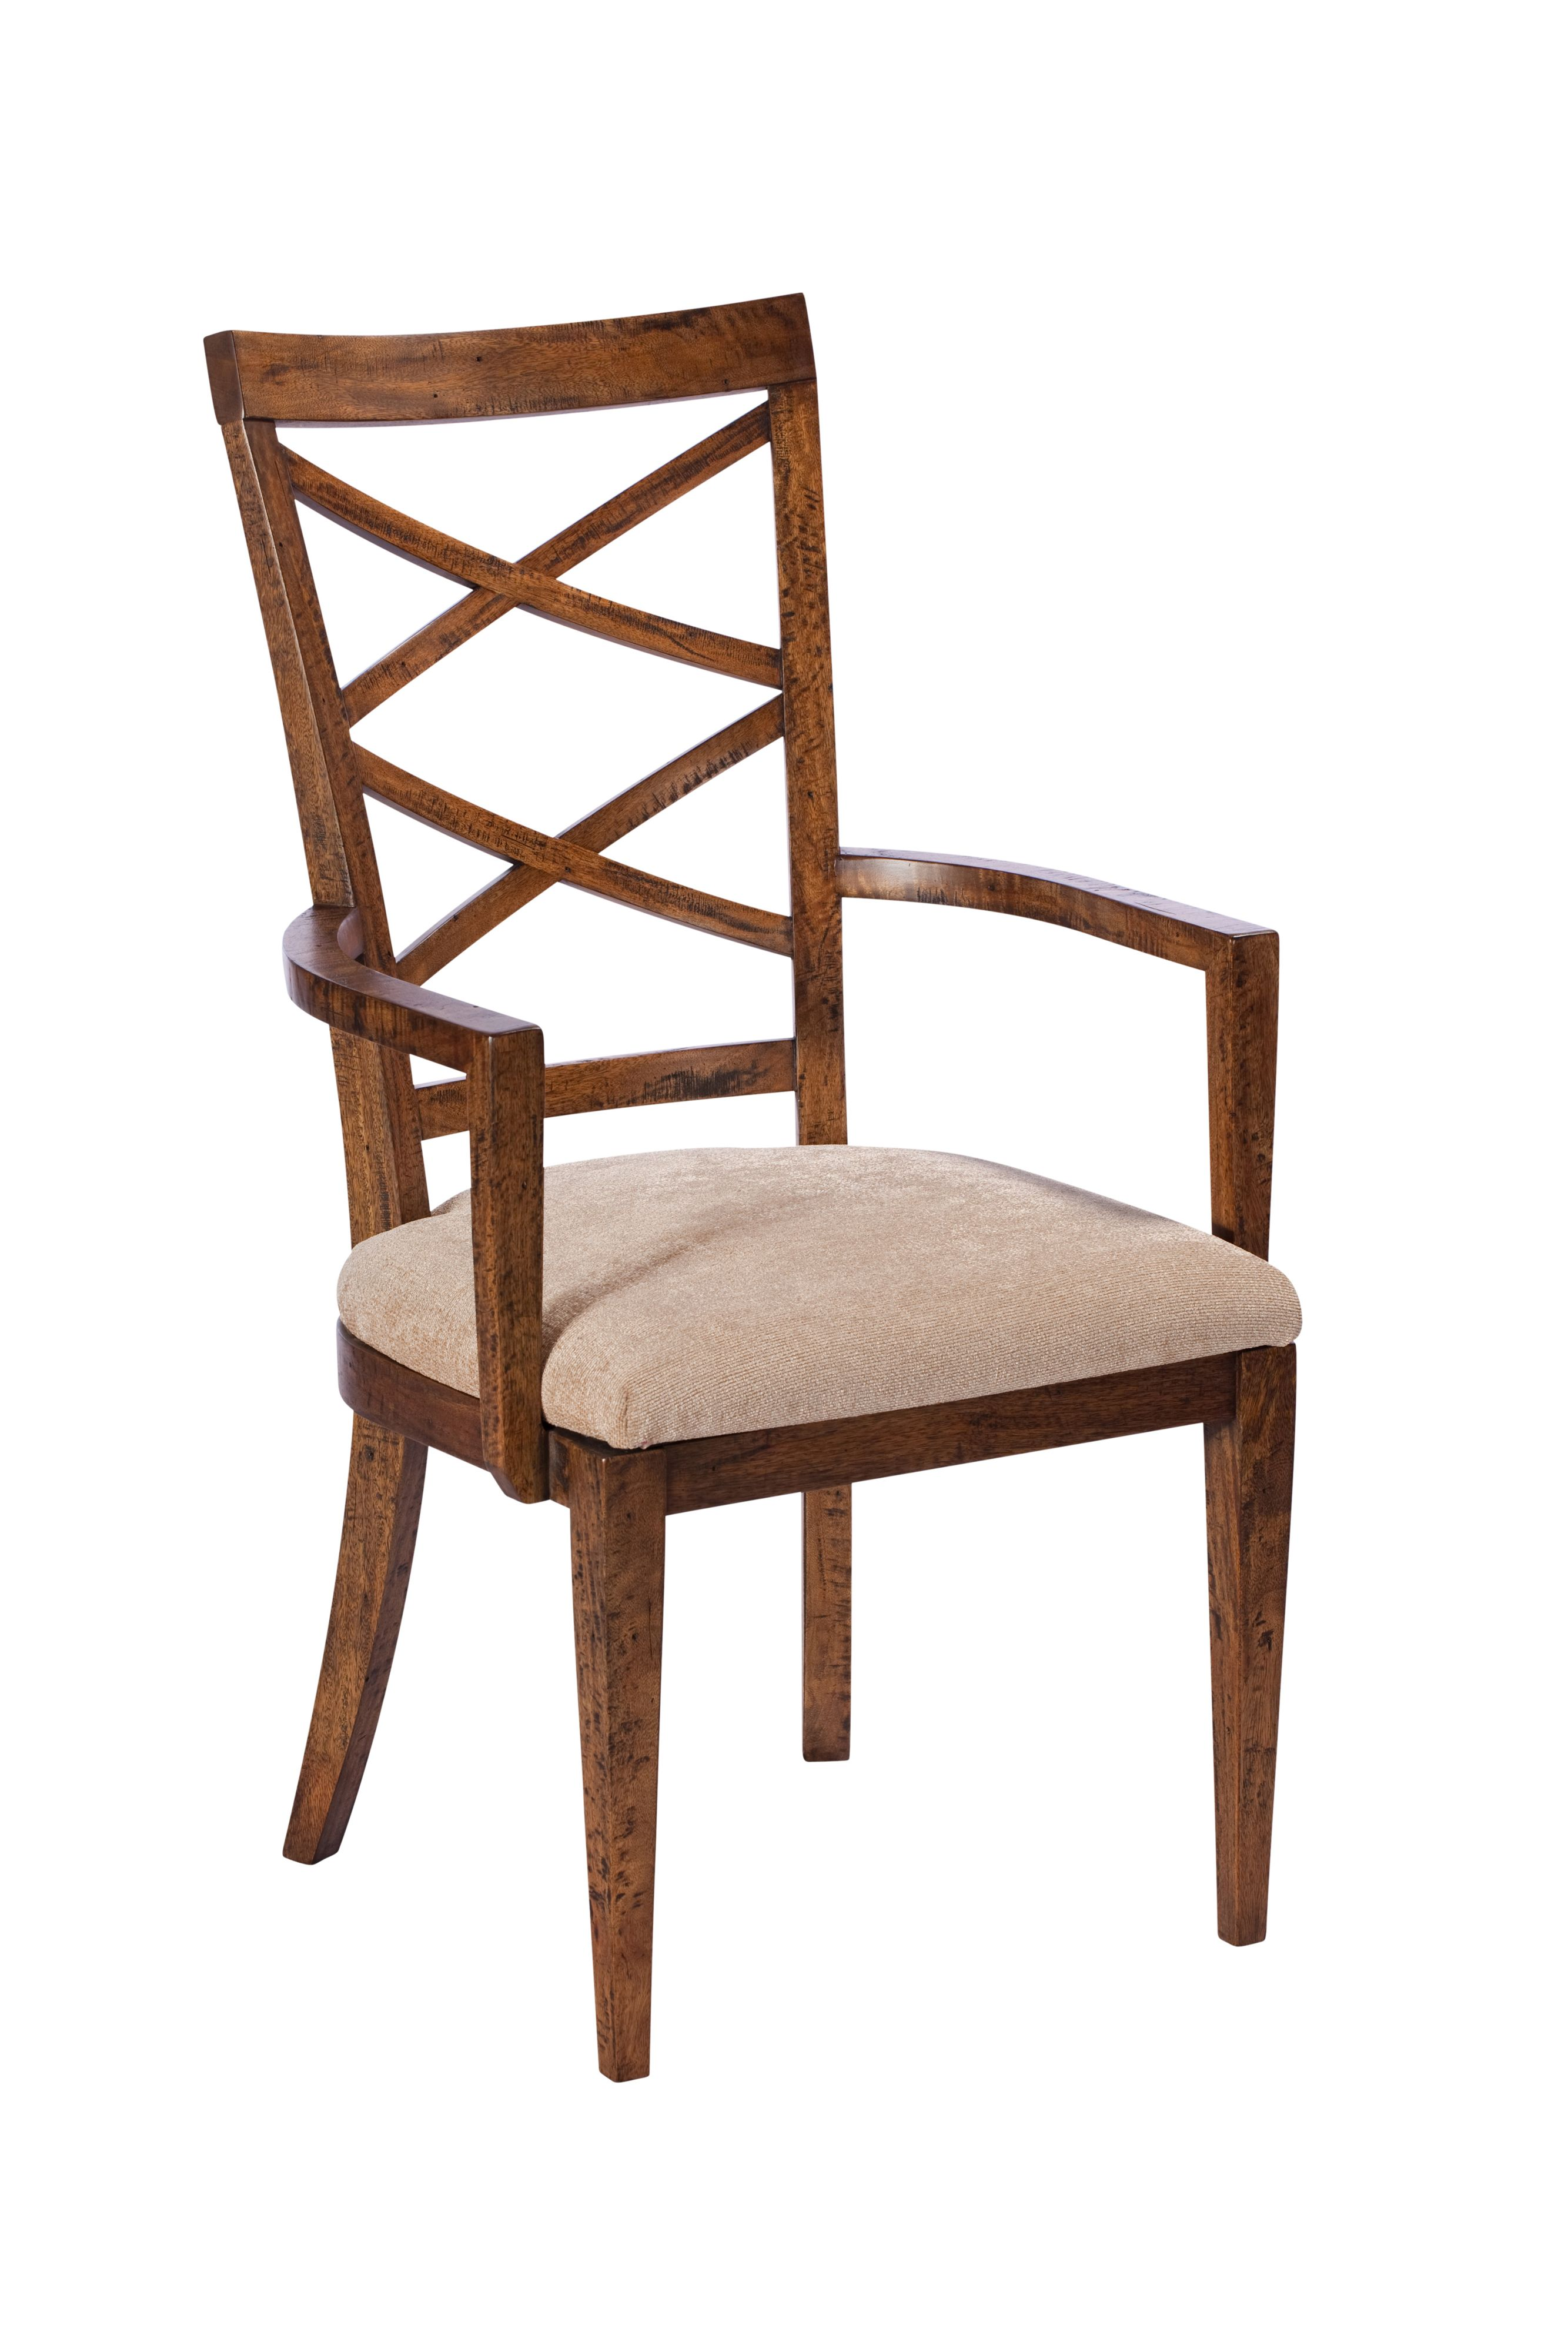 Marlborough biedermeier armchair pair